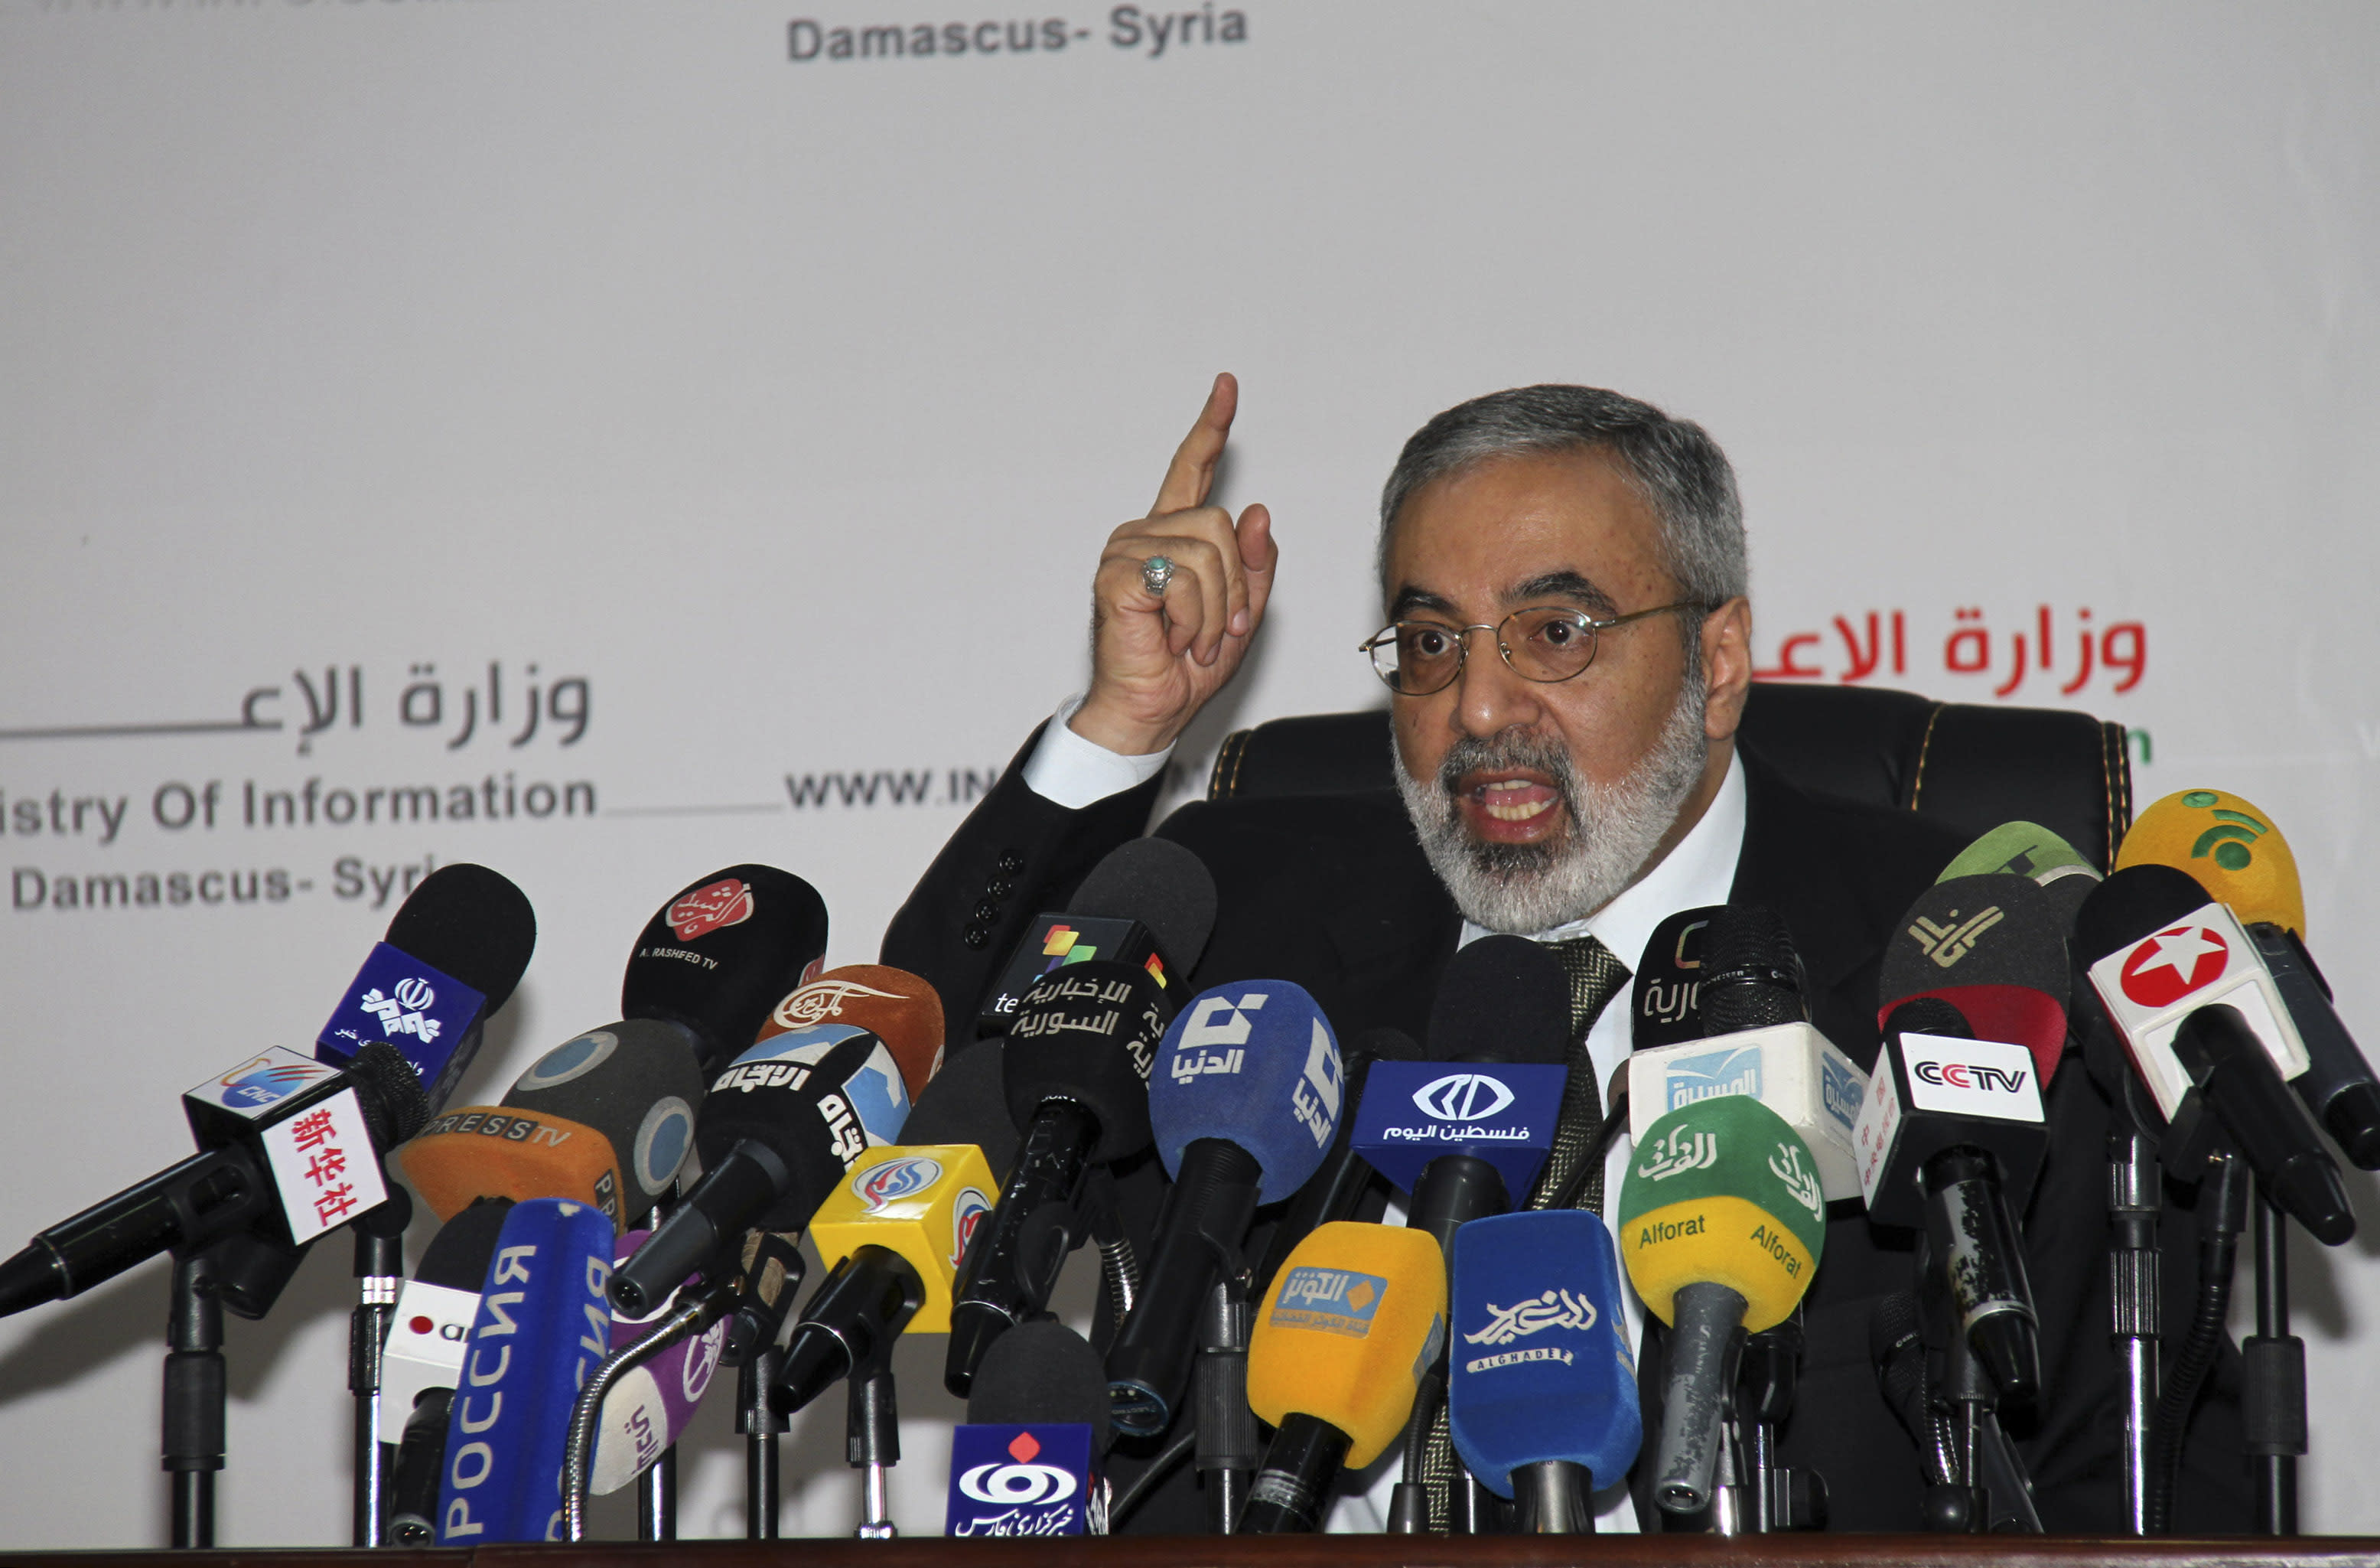 """Syrian Information Minister Omran al-Zoebi speaks during a press conference in Damascus, Syria, Monday, September 3, 2012. Al-Zoebi vowed that Syria will give the new U.N. envoy, Lakhdar Brahimi, """"maximum assistance the way we did with Kofi Annan."""" The Assad regime made similar public statements when it signed on to Annan's peace plan, only to frequently ignore or outright violate its commitments, by failing to pull its troops out of cities or stop shelling opposition areas. (AP Photo Bassem Tellawi)"""